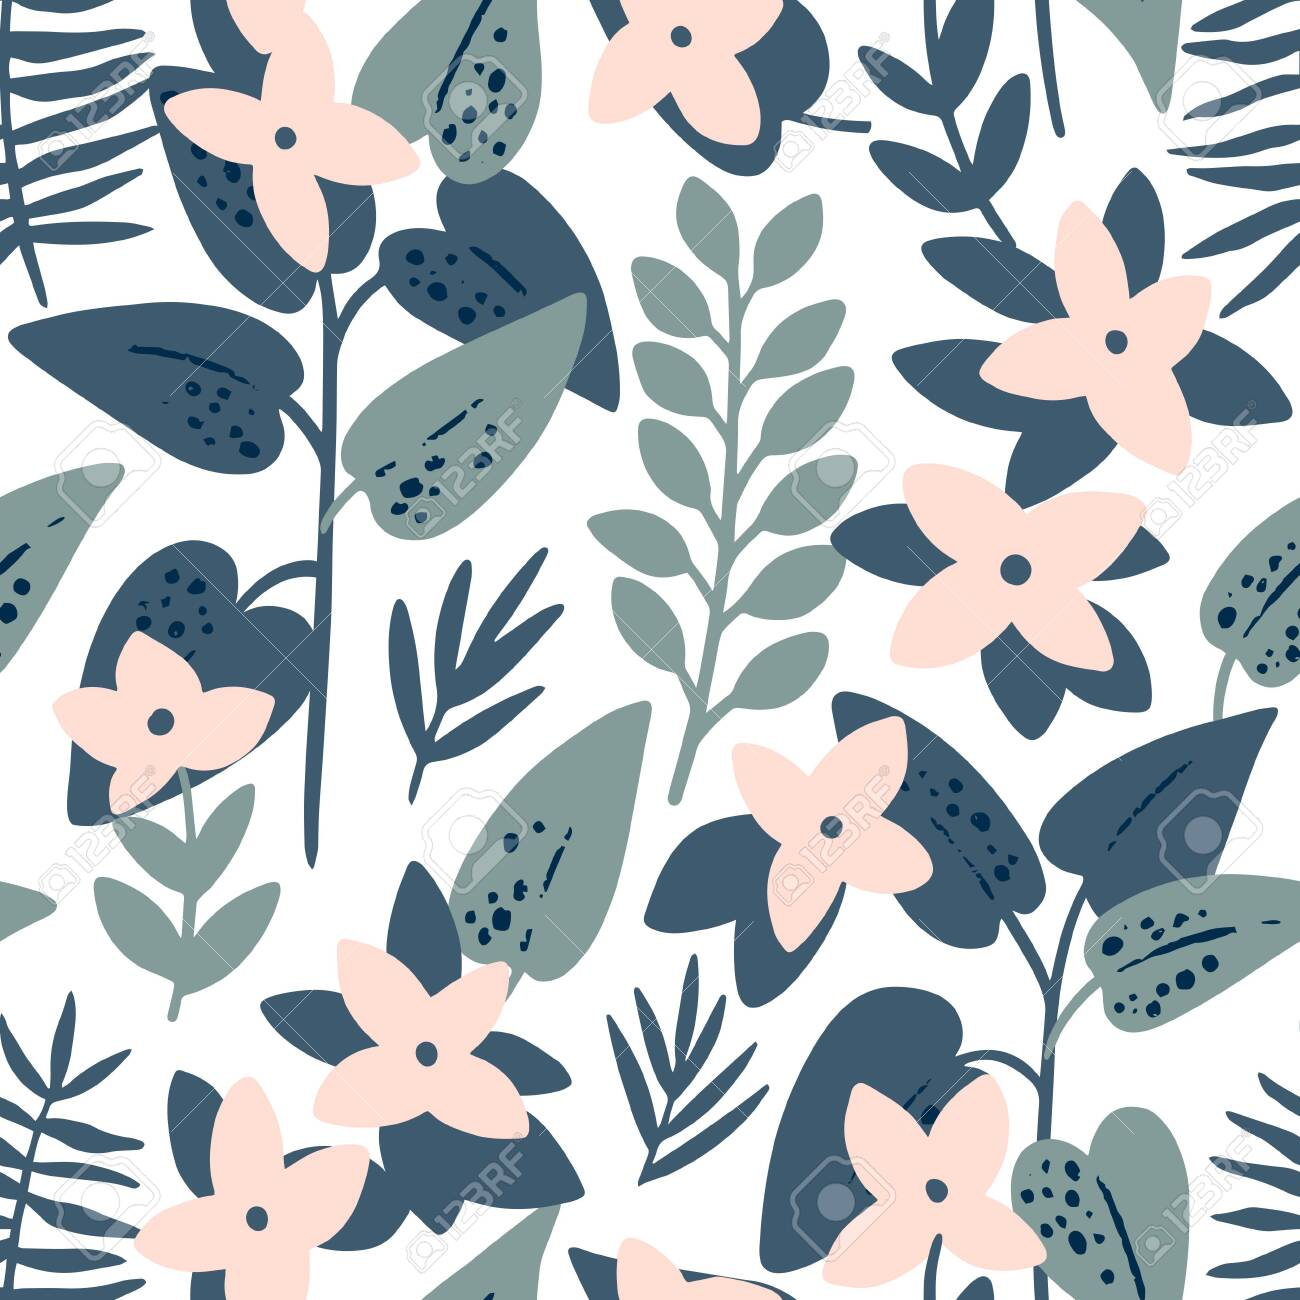 Pink frangipani (plumeria) flowers and palm leaves seamless pattern. Tropical background. Retro vector illustration - 144865742